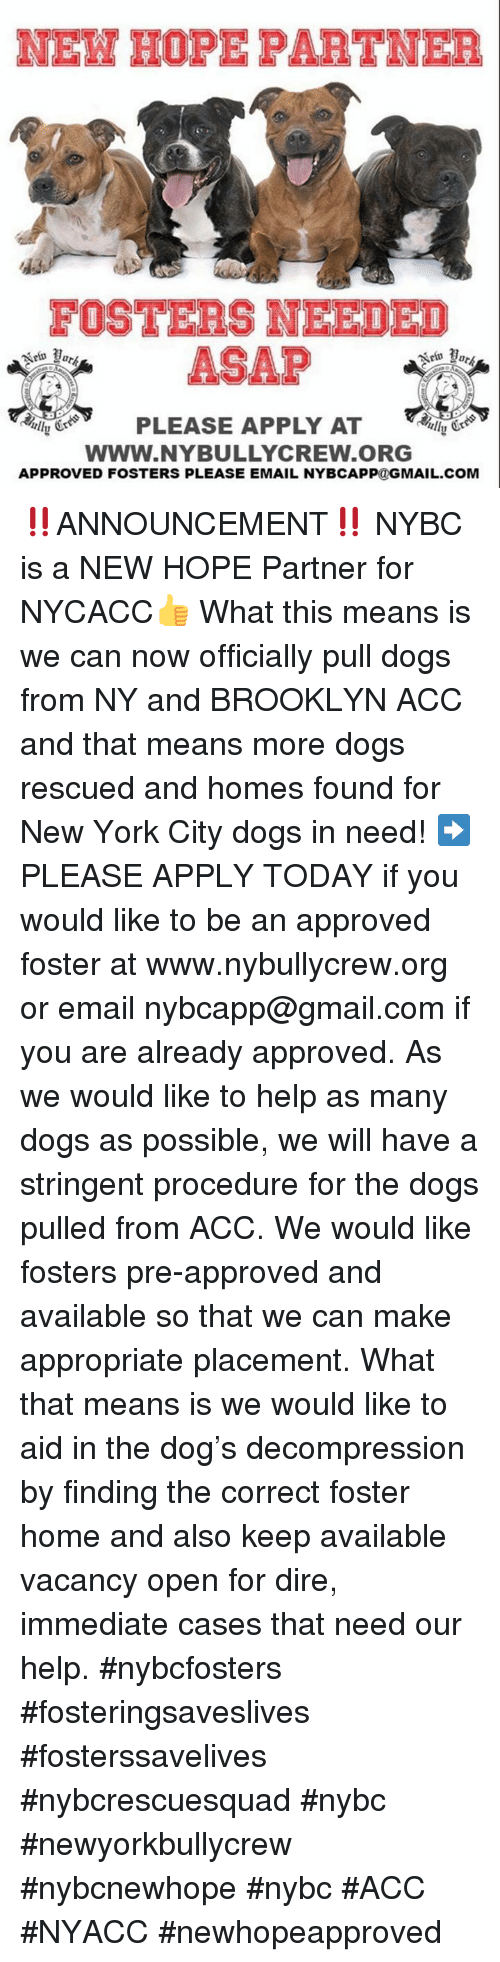 Dogs, Memes, and New York: FOSTERS NEEDED  ASAP  PLEASE APPLY AT  Www.NYBULLYCREW.ORG  APPROVED FOSTERS PLEASE EMAIL NYBCAPP@GMAIL.COM ‼️ANNOUNCEMENT‼️  NYBC is a NEW HOPE Partner for NYCACC👍 What this means is we can now officially pull dogs from NY and BROOKLYN ACC and that means more dogs rescued and homes found for New York City dogs in need! ➡️ PLEASE APPLY TODAY if you would like to be an approved foster at www.nybullycrew.org or email nybcapp@gmail.com if you are already approved.   As we would like to help as many dogs as possible, we will have a stringent procedure for the dogs pulled from ACC. We would like fosters pre-approved and available so that we can make appropriate placement. What that means is we would like to aid in the dog's decompression by finding the correct foster home and also keep available vacancy open for dire, immediate cases that need our help.   #nybcfosters #fosteringsaveslives #fosterssavelives #nybcrescuesquad #nybc #newyorkbullycrew #nybcnewhope #nybc #ACC #NYACC #newhopeapproved